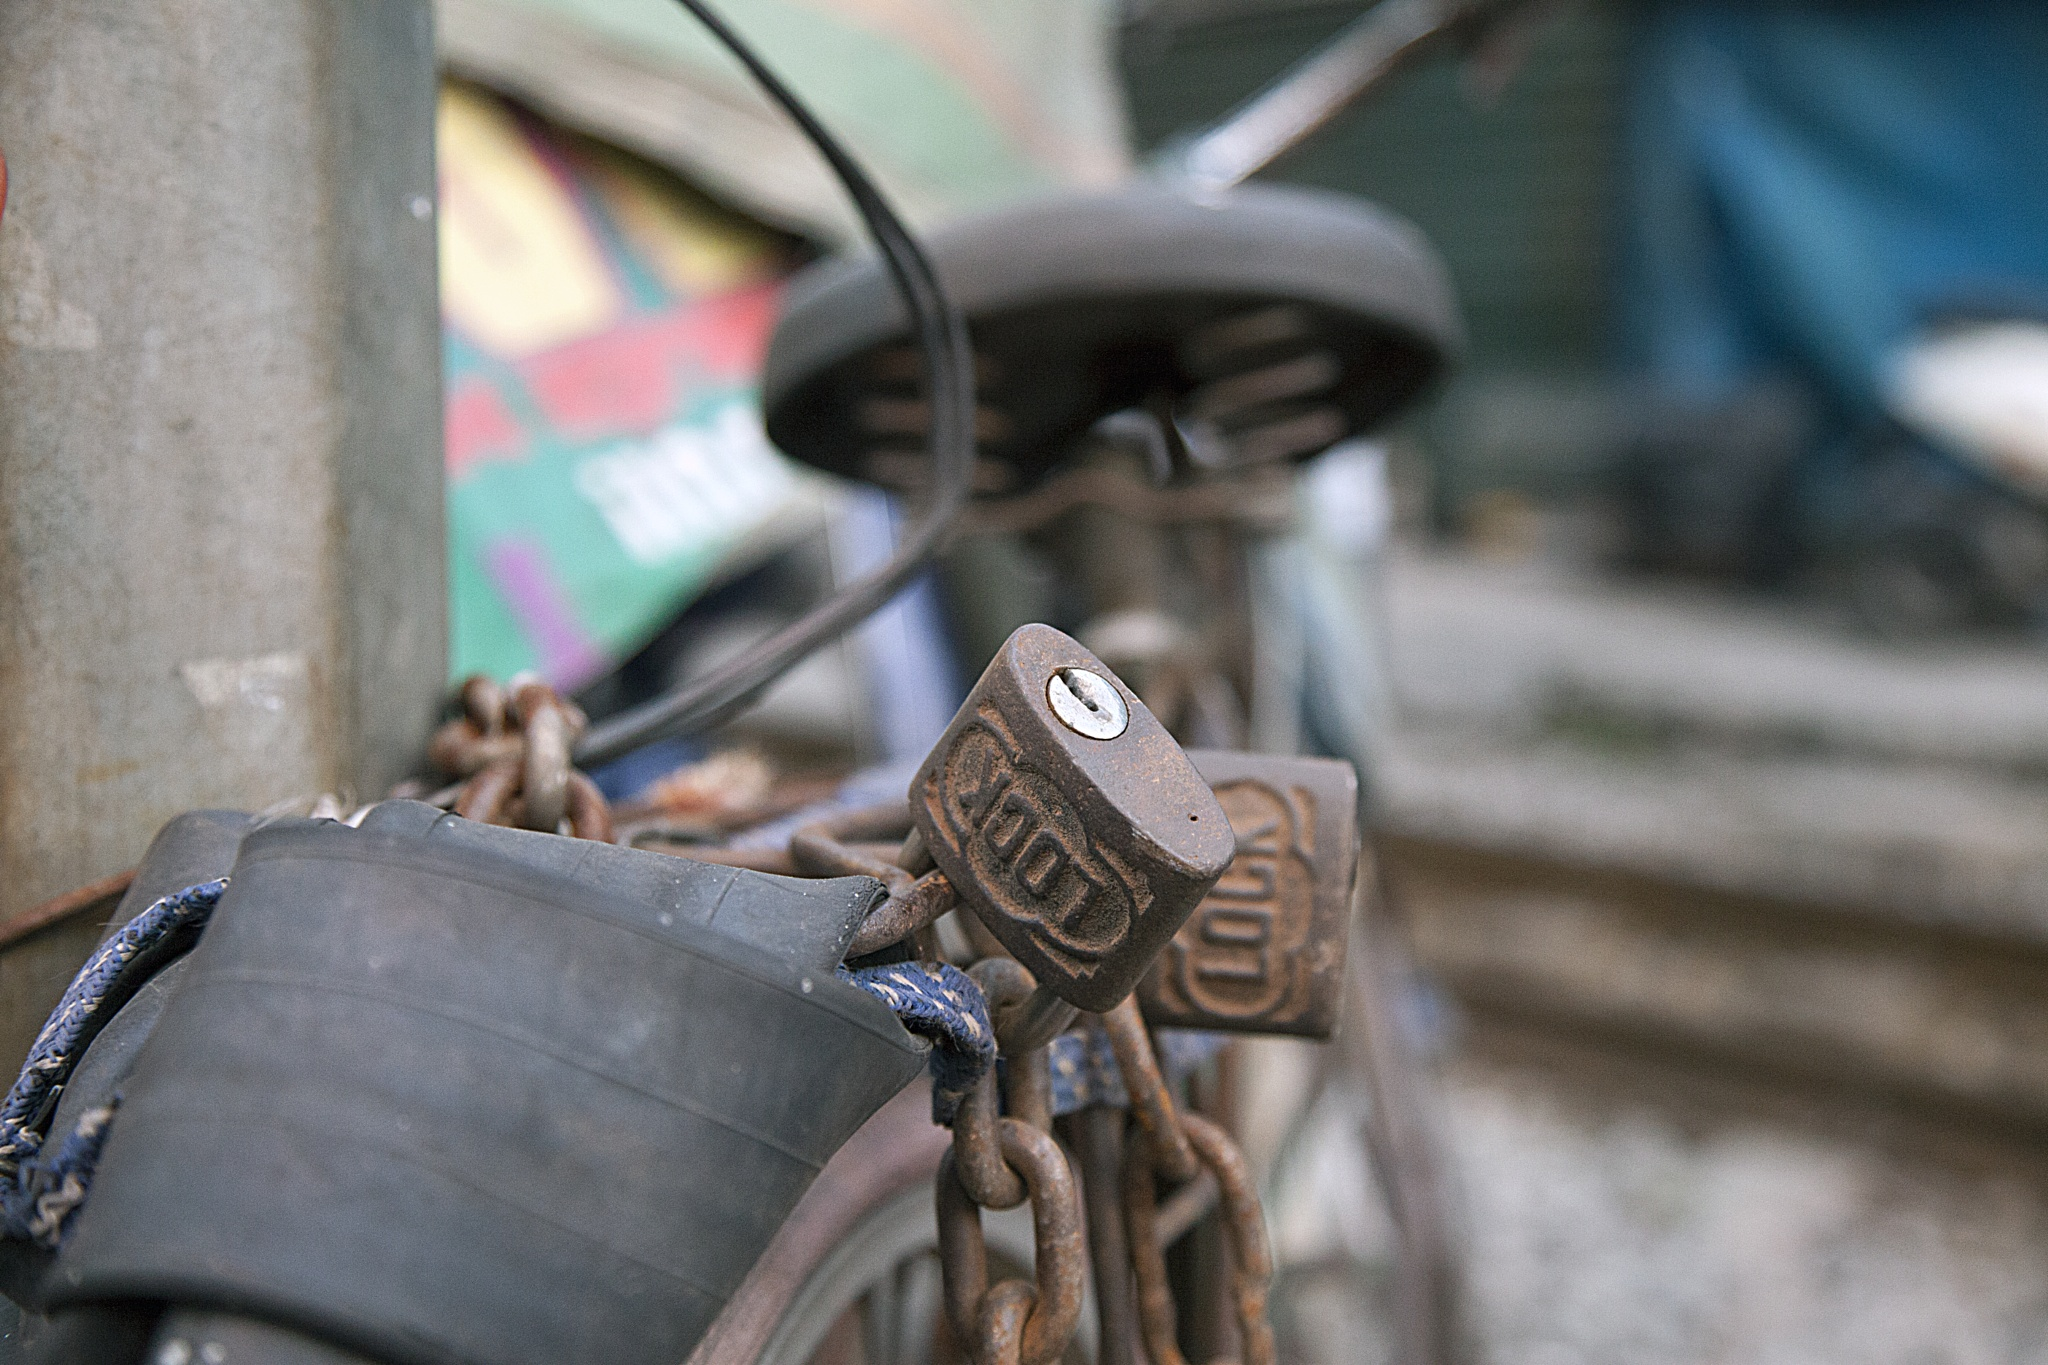 Old Bike in Hanoi, Vietnam by Anders Jonsson